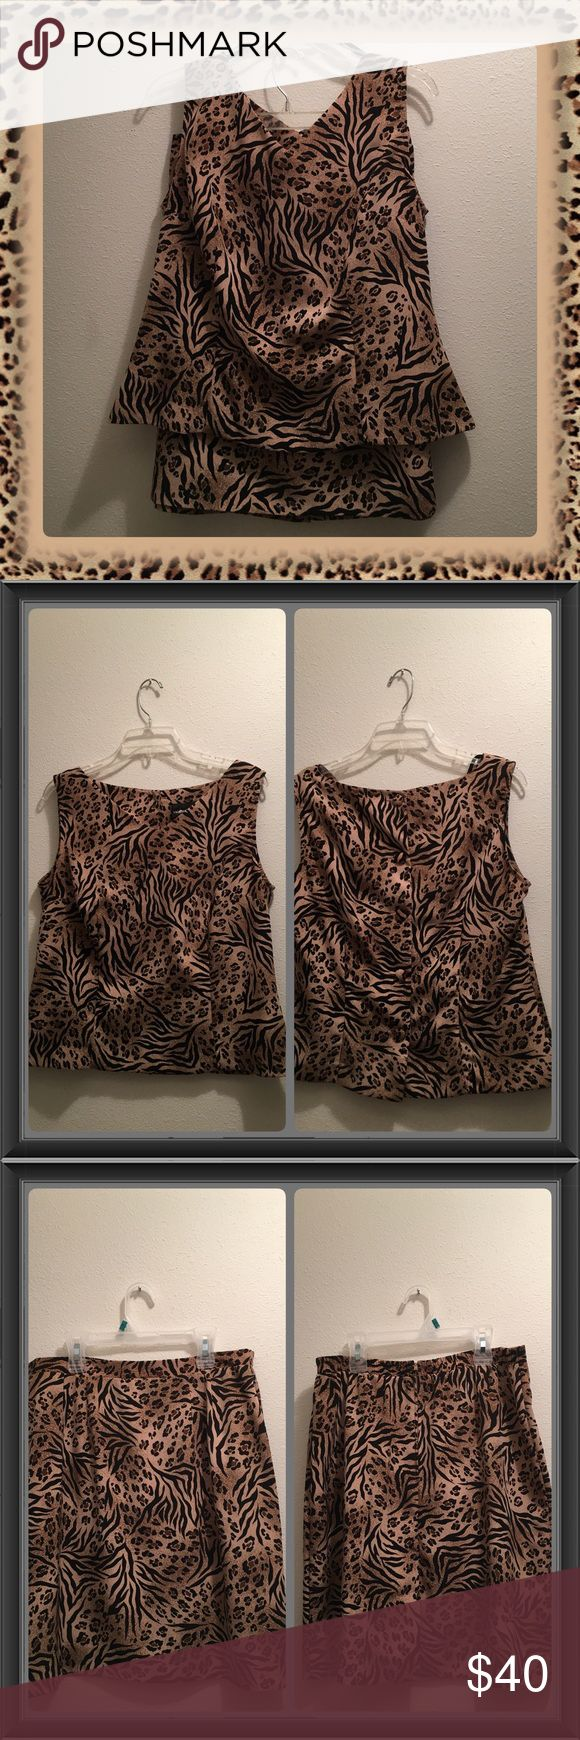 NWOT SAG HARBOR LEOPARD PRINT SKIRT OUTFIT SZ 12 Very classy Sag Harbor Sleeveless Leopard Print Skirt Outfit SZ 12 never worn. Top is Sleeveless, small V neck in front & buttons down the back. The skirt has a straight band in front, elastic at back, zips up & has a slit up the middle bottom of skirt, not real high. I purchased to wear to Church & gained weight b4 I got a chance to wear it. It looks great on with either Black of tan pumps. Paid $70 for it & selling very reasonable. PRICE IS…